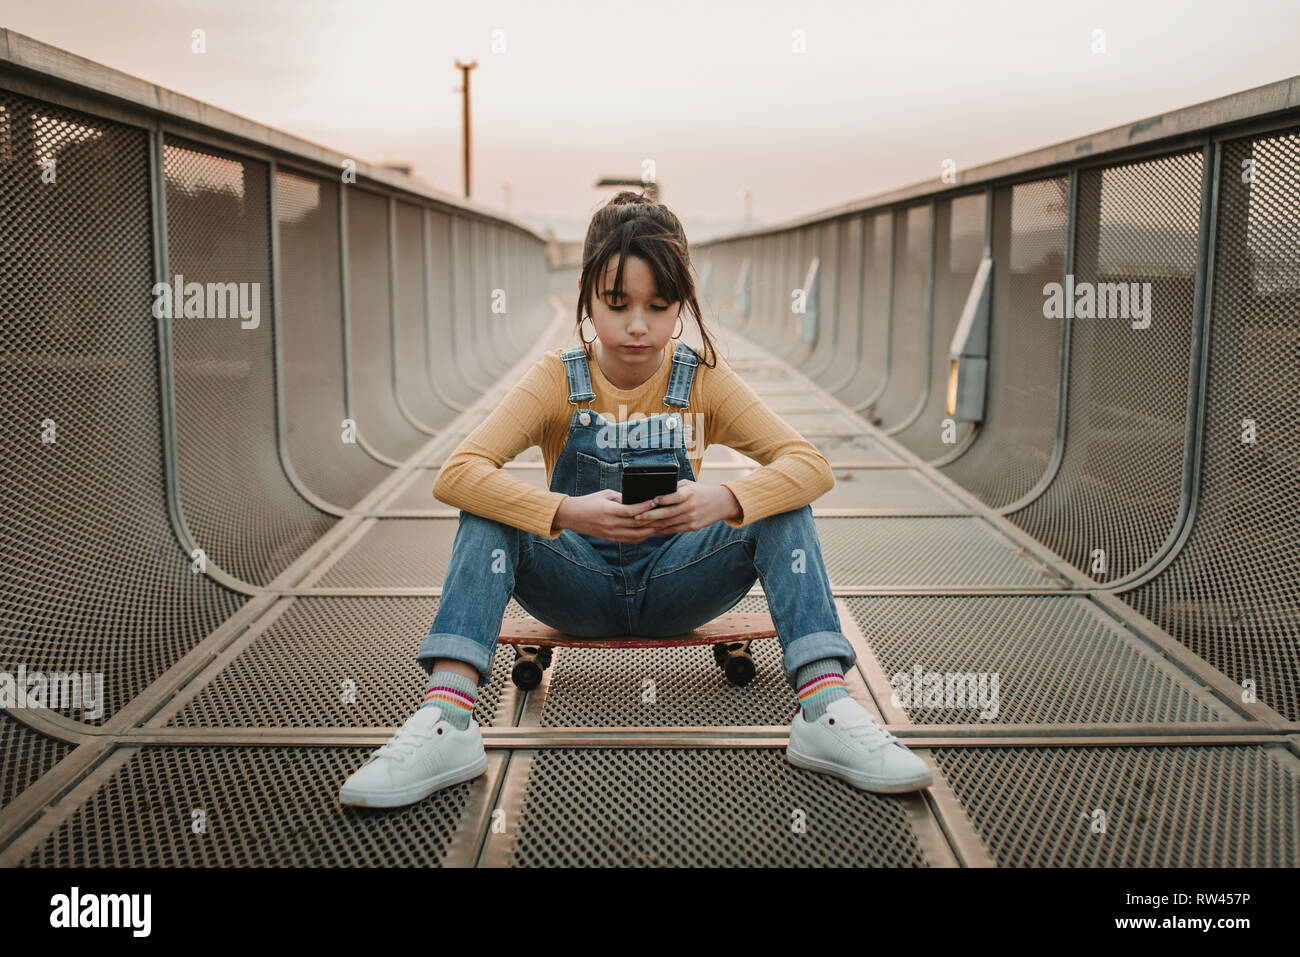 Stylish teen in jean overall sitting on skateboard and using mobile phone on footpath in city - Stock Image